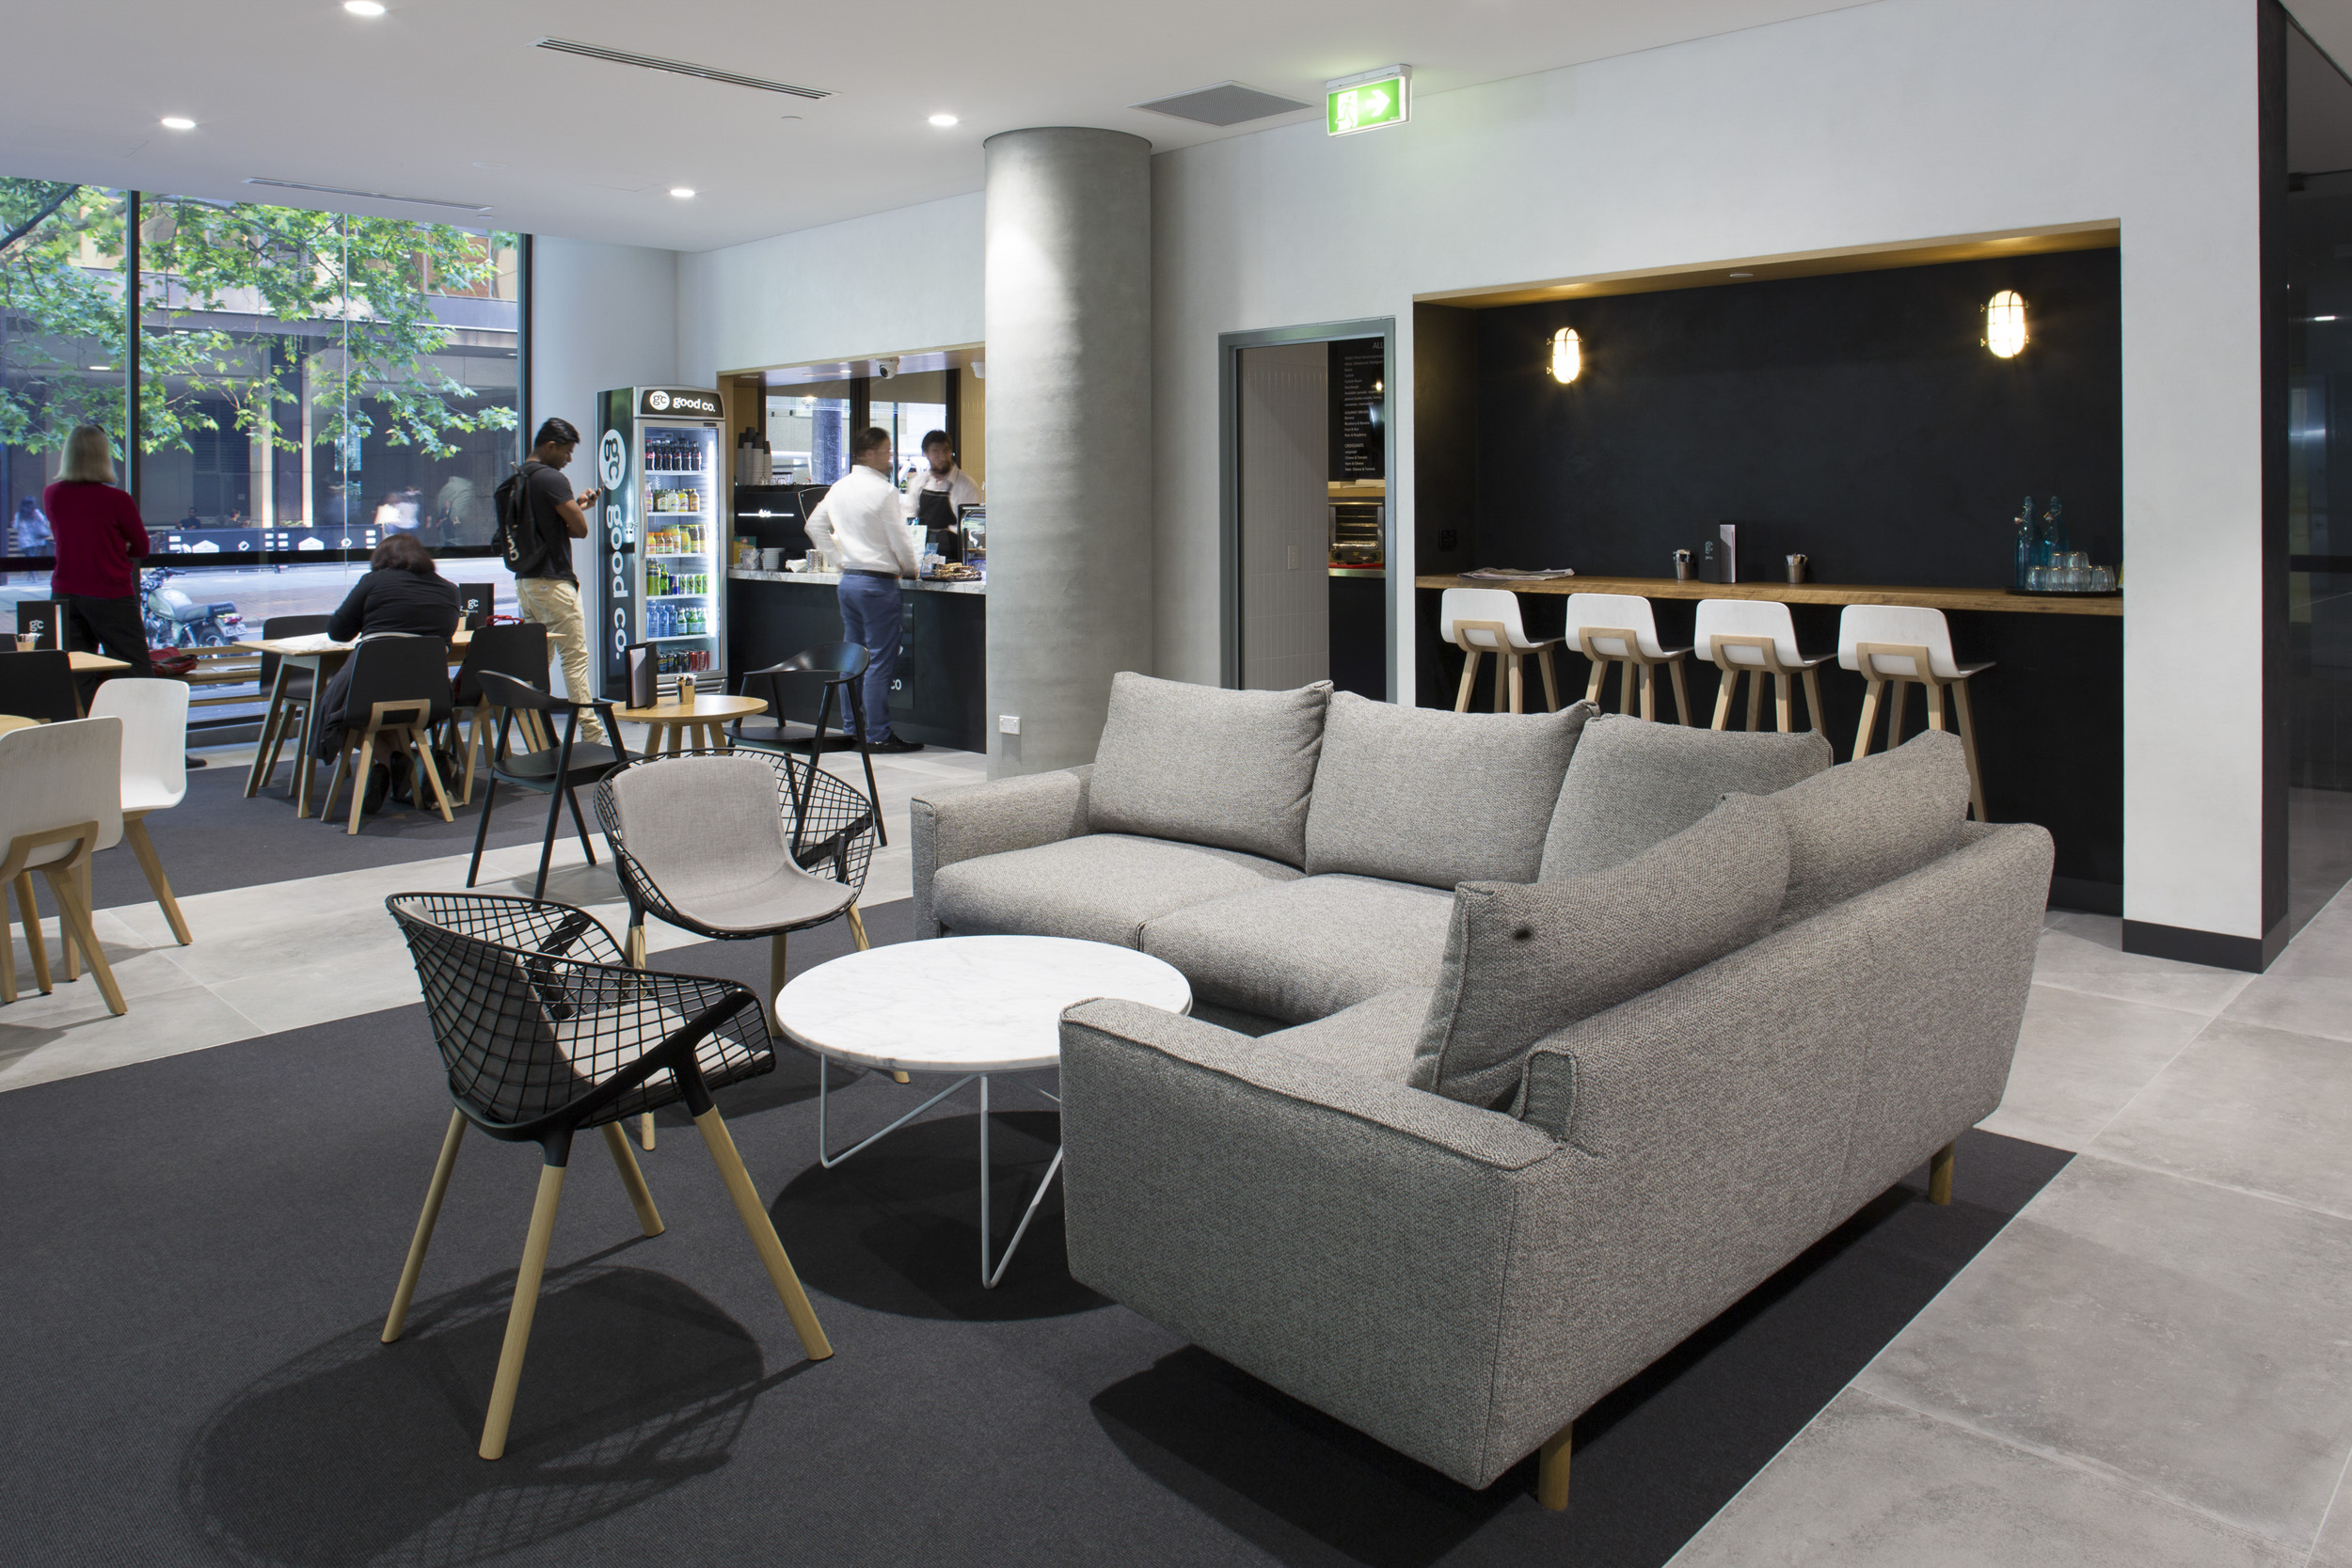 workplace_interior_design_sydney_13.jpg